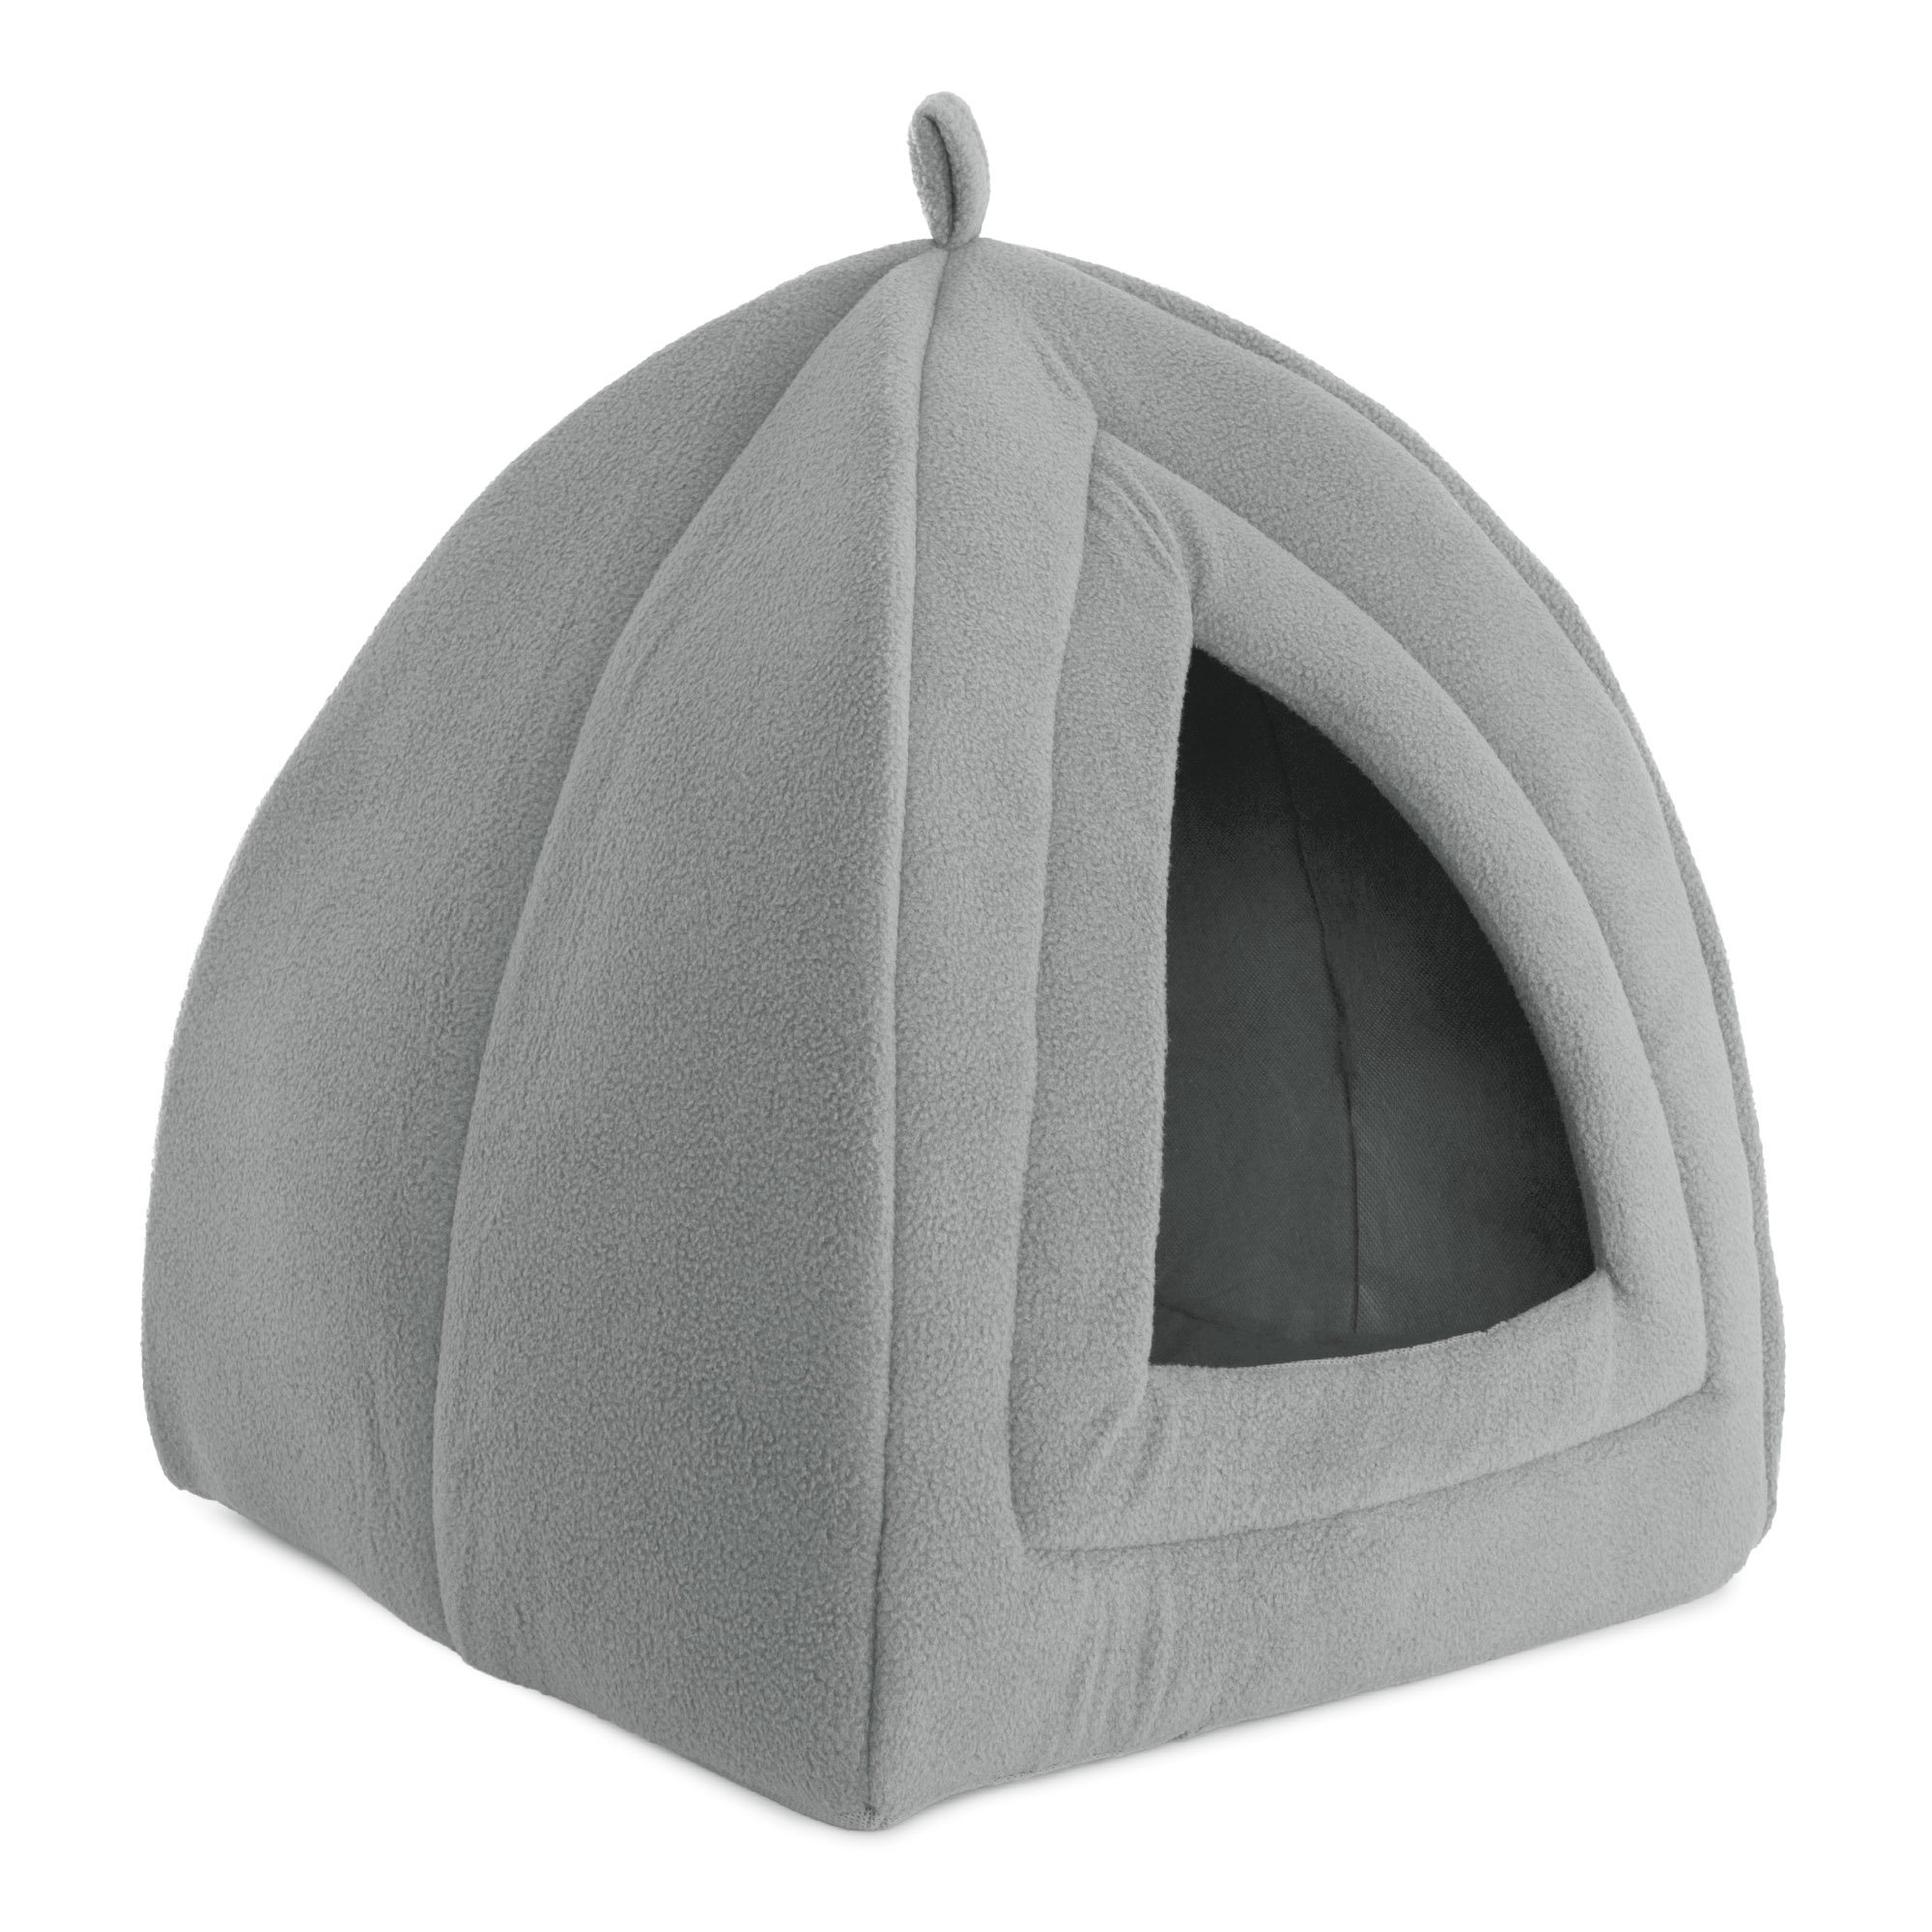 PETMAKER Cat Pet Bed, Igloo- Soft Indoor Enclosed Covered Tent/House for Cats, Kittens, and Small Pets with Removable Cushion Pad by (Grey)